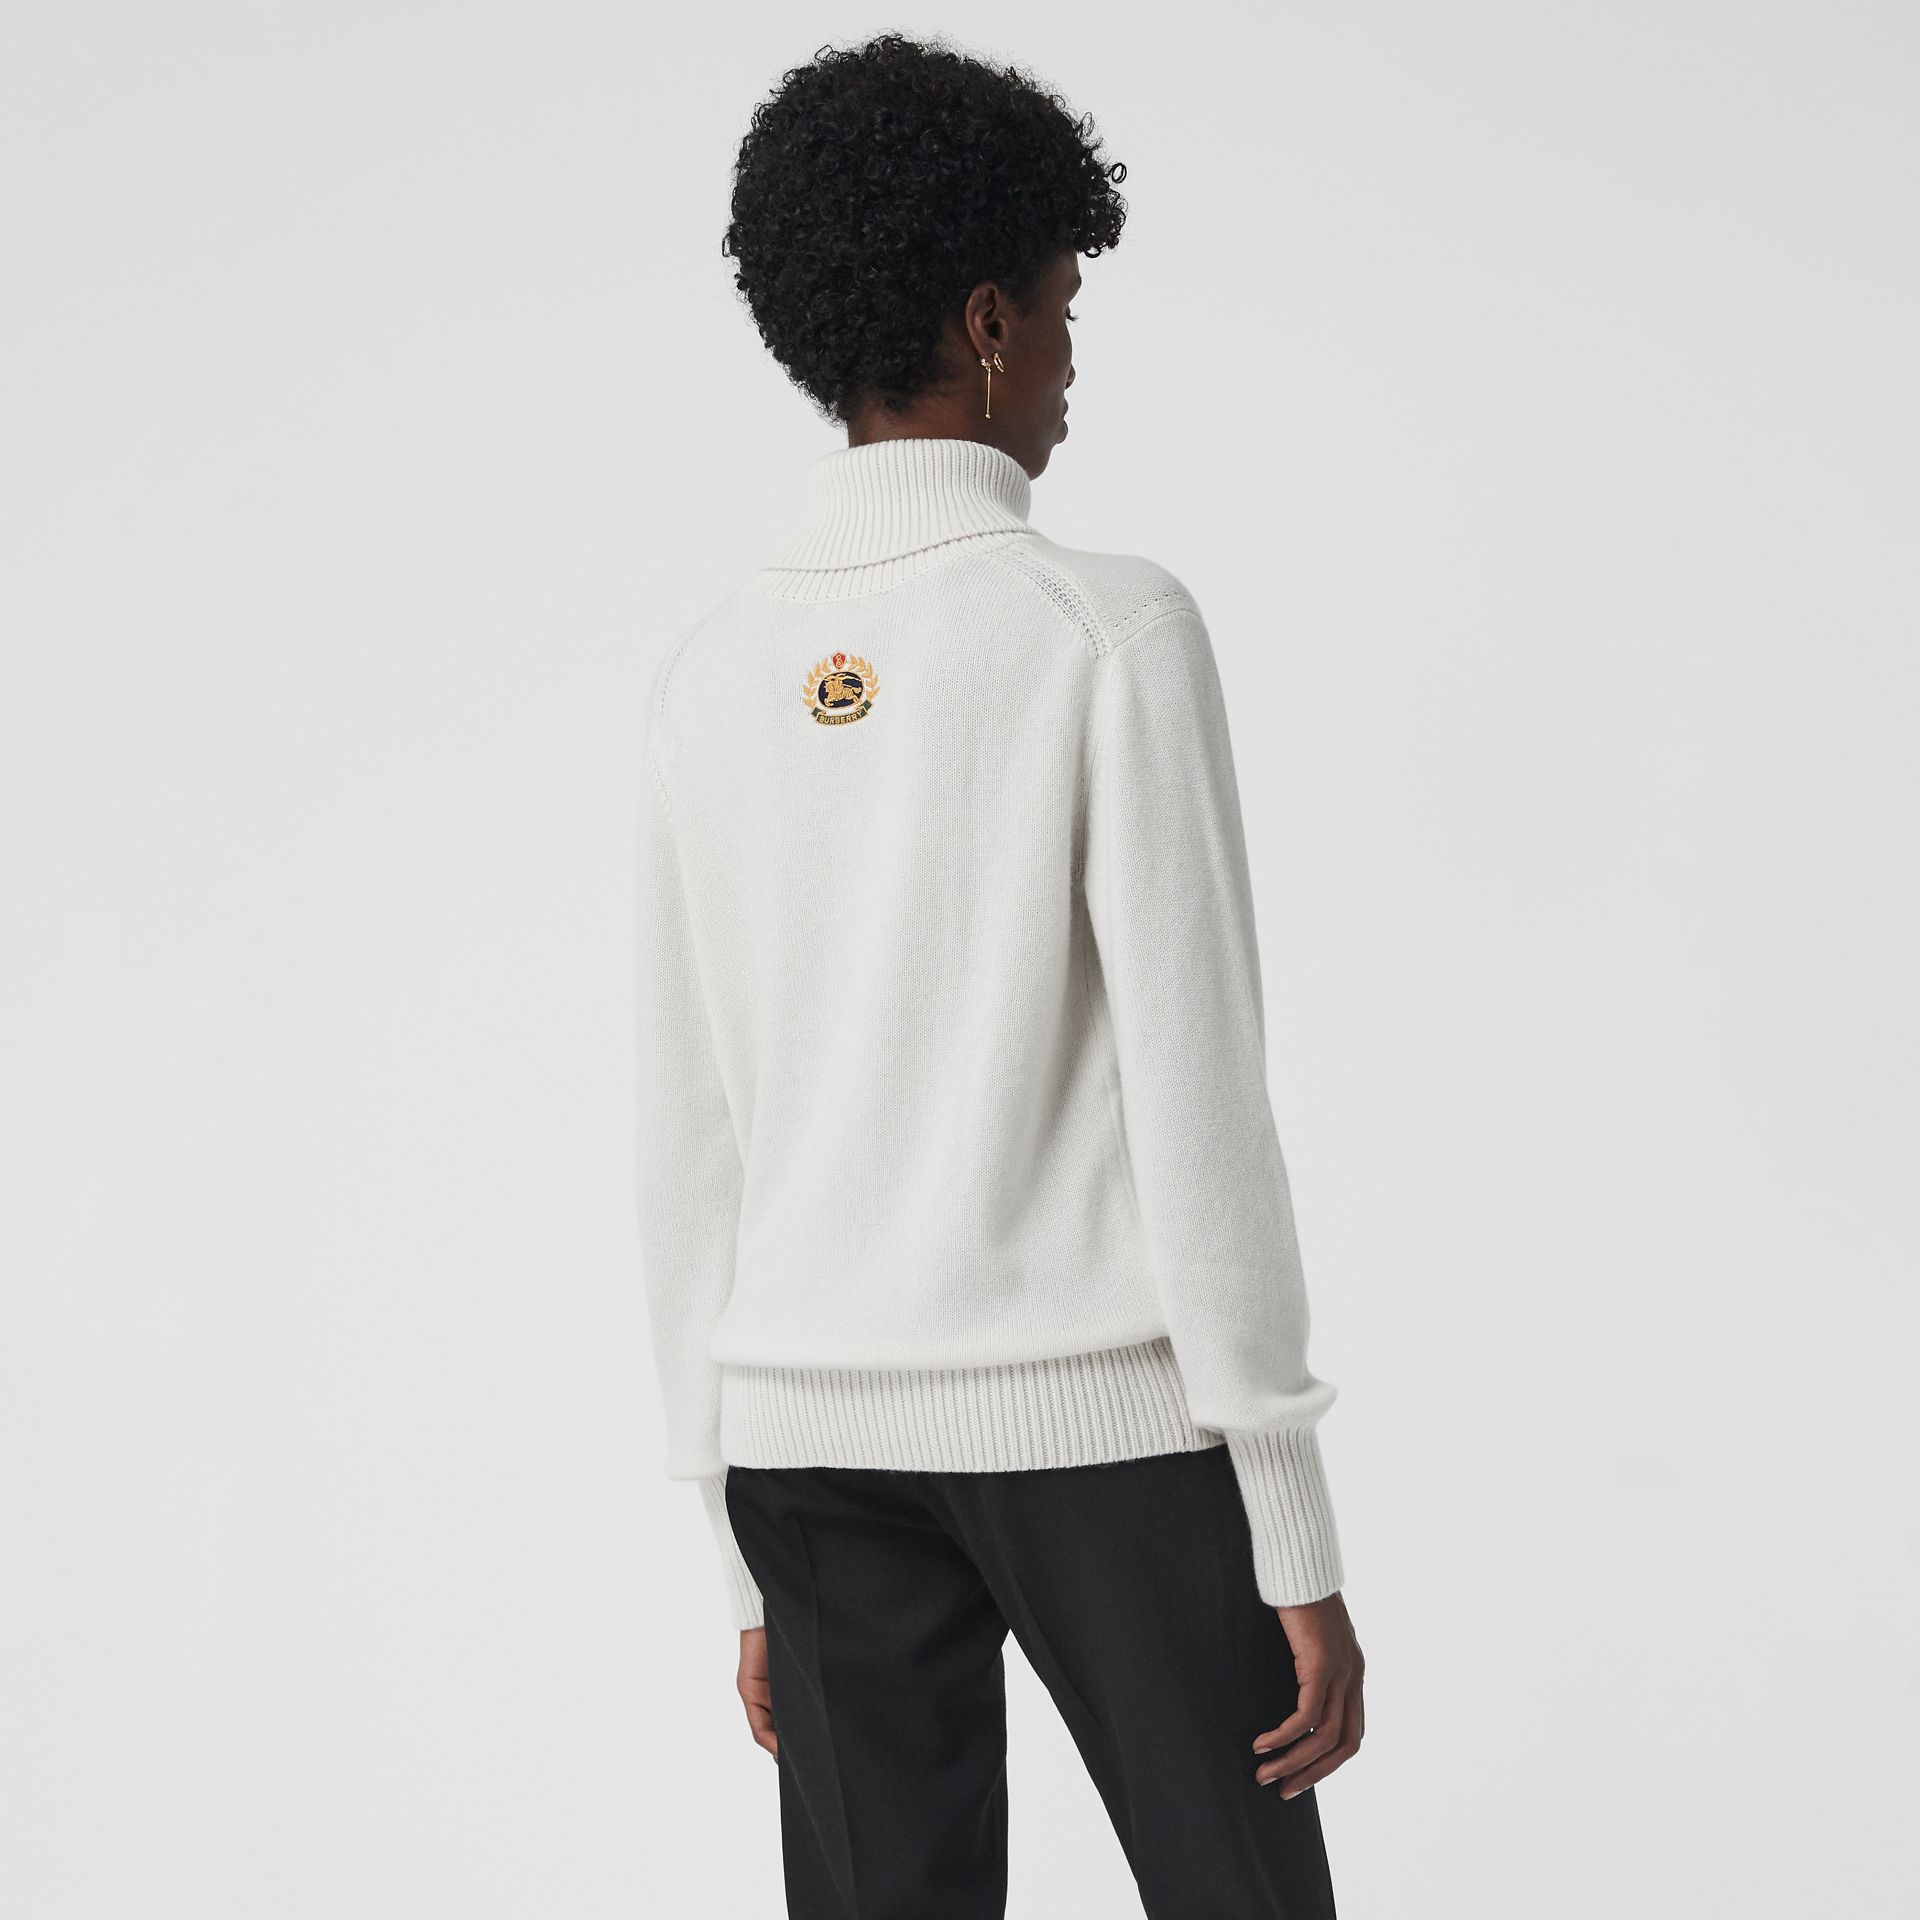 Embroidered Crest Cashmere Roll-neck Sweater in White - Women | Burberry United States - gallery image 2